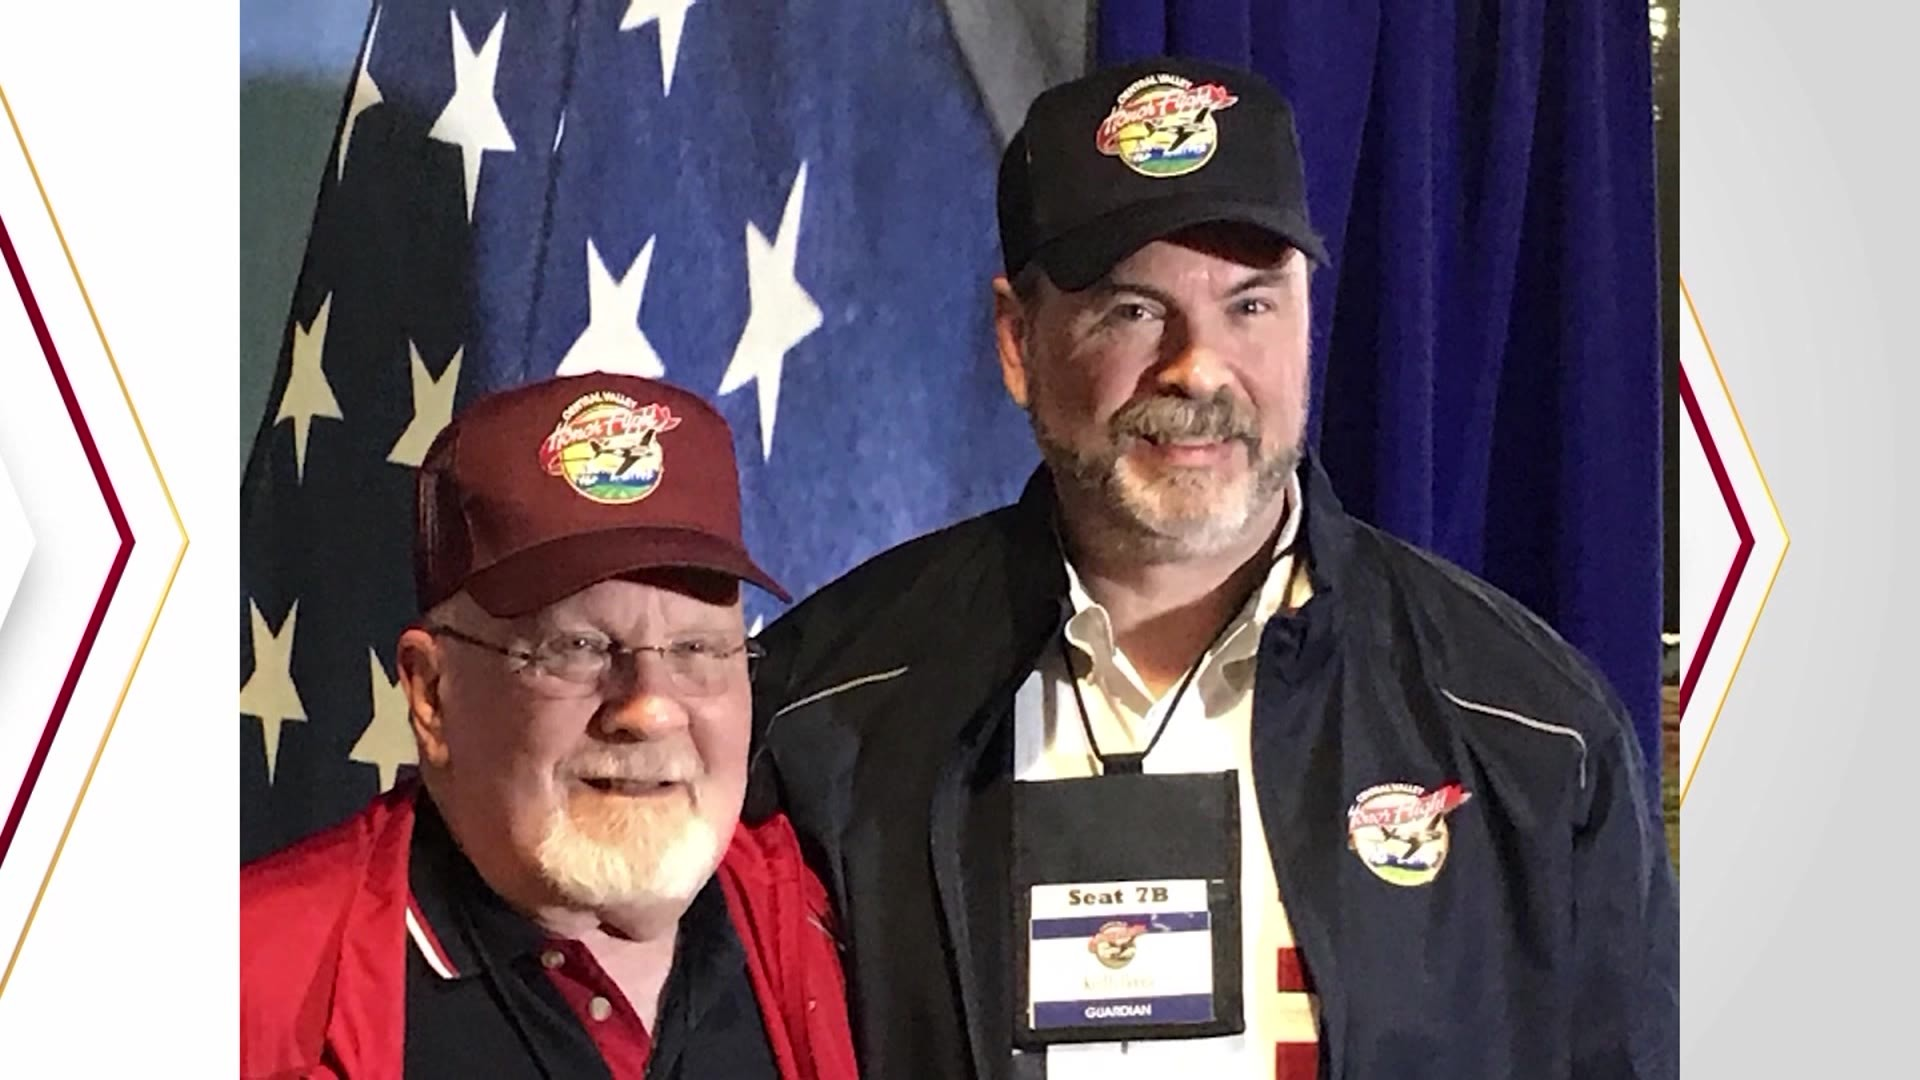 MedWatch Today: Laproscopic surgeon & father travel to Washington, D.C. on the Honor Flight